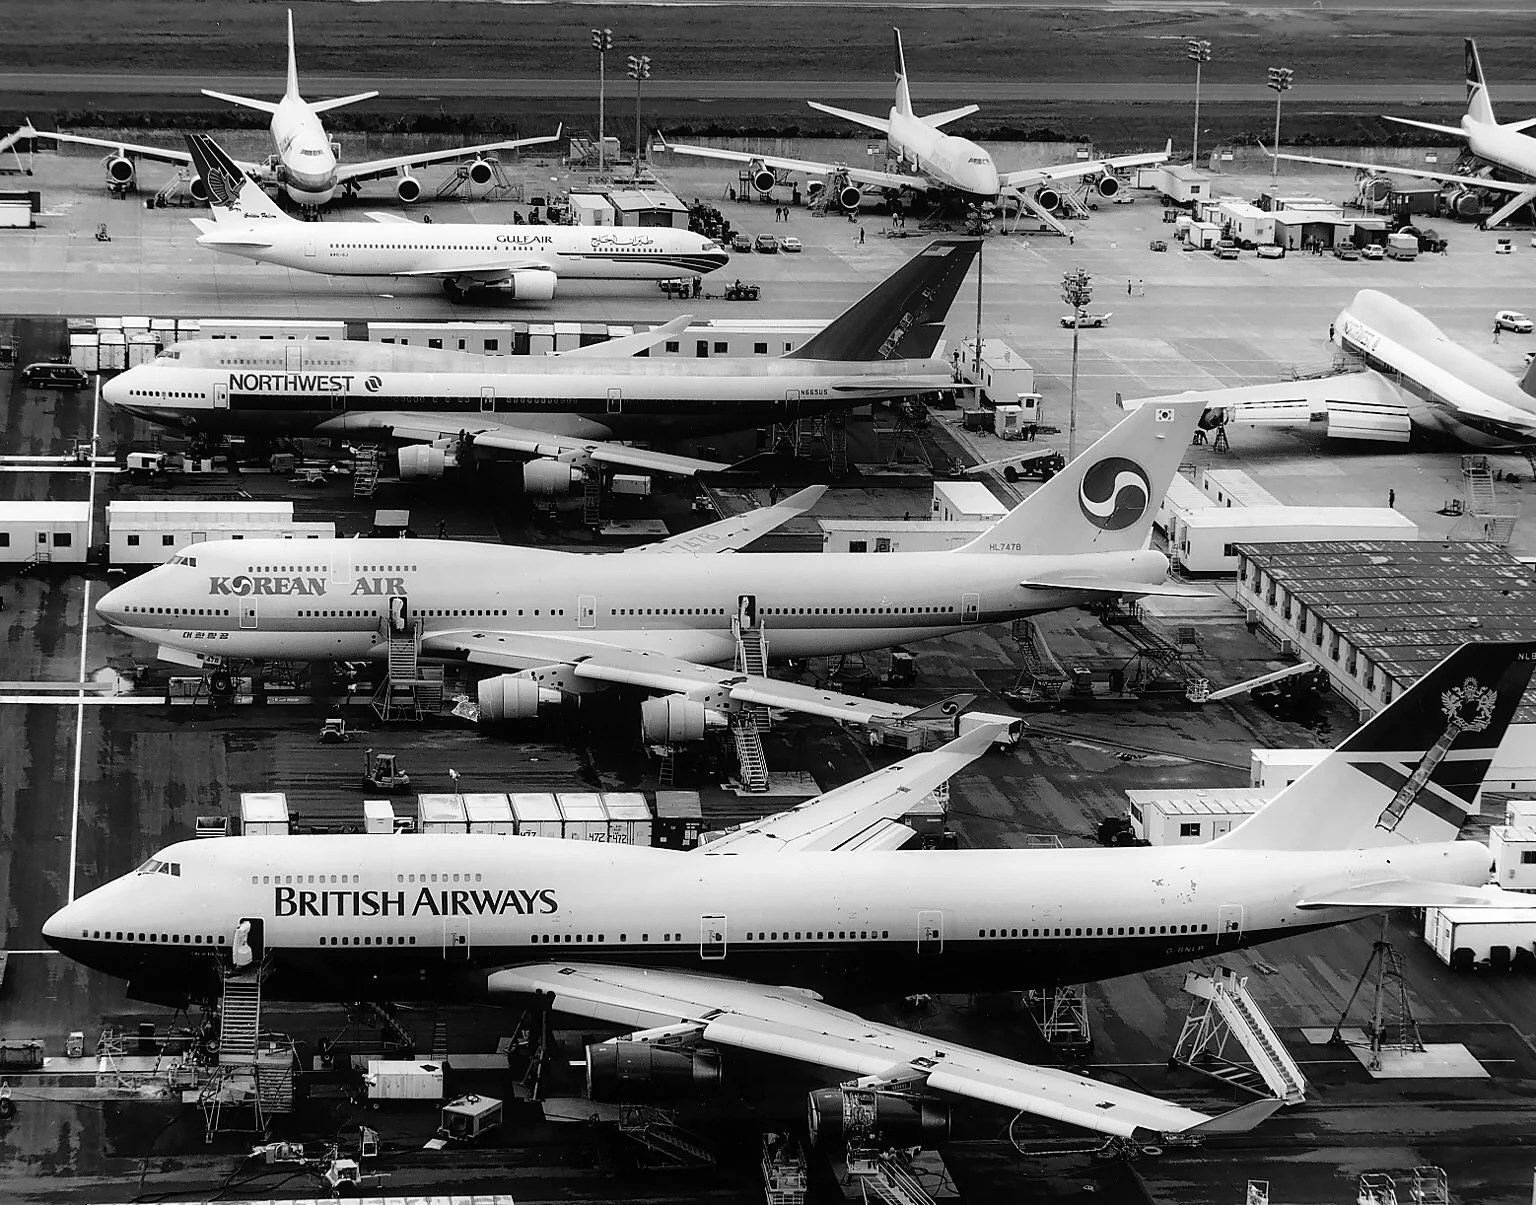 The Amazing Story of the Boeing 747 in 12 Photos